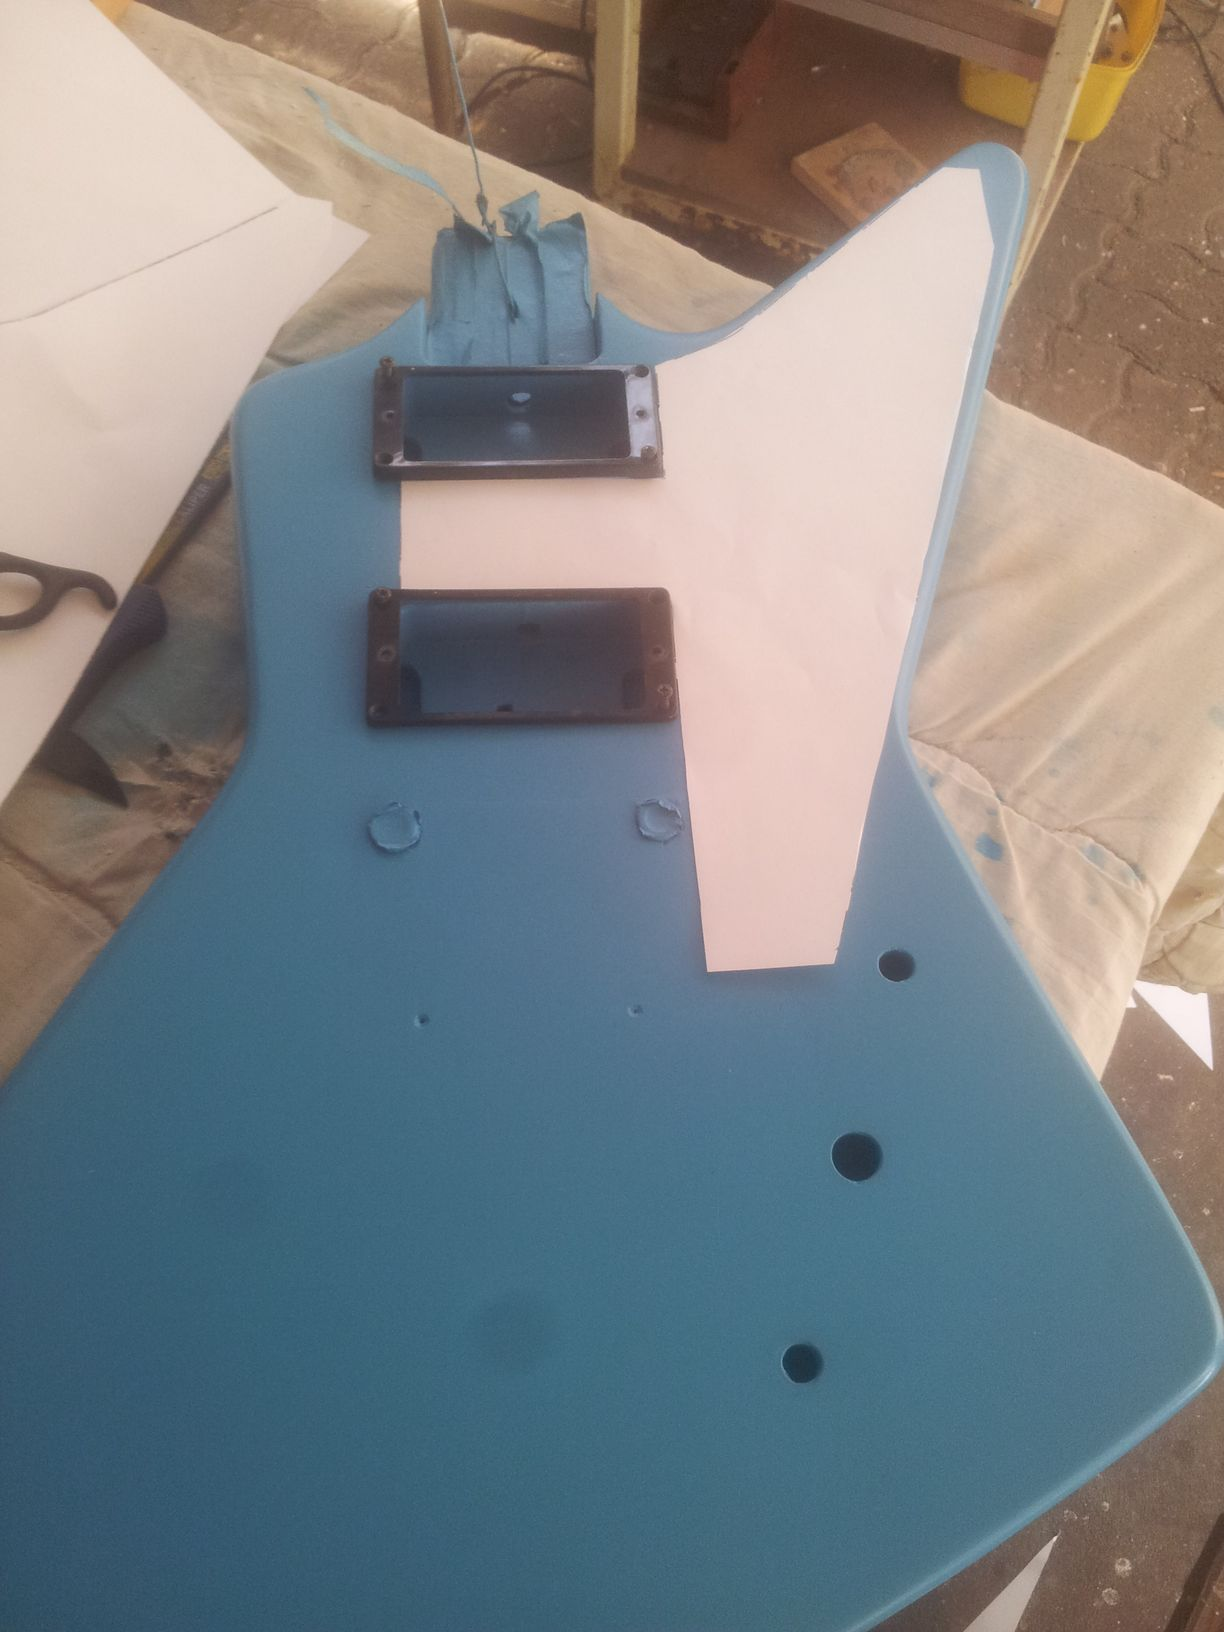 Mocking up the pickguard with an inkjet printer.